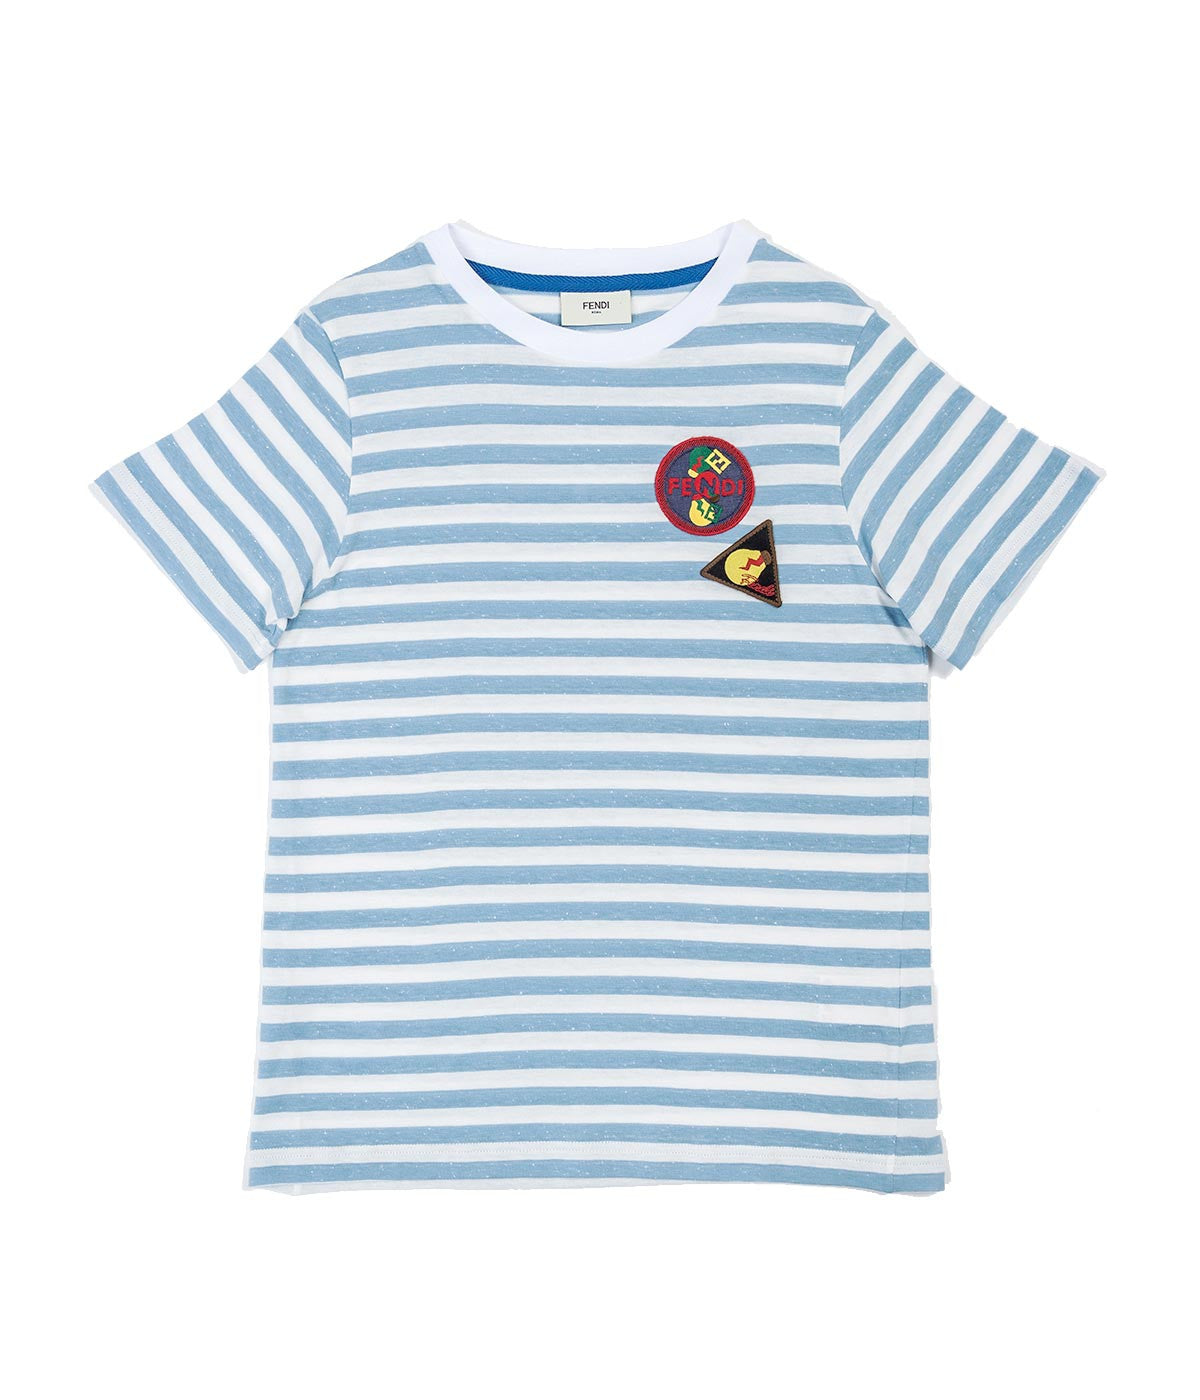 Kids Slub Knit Striped T-Shirt